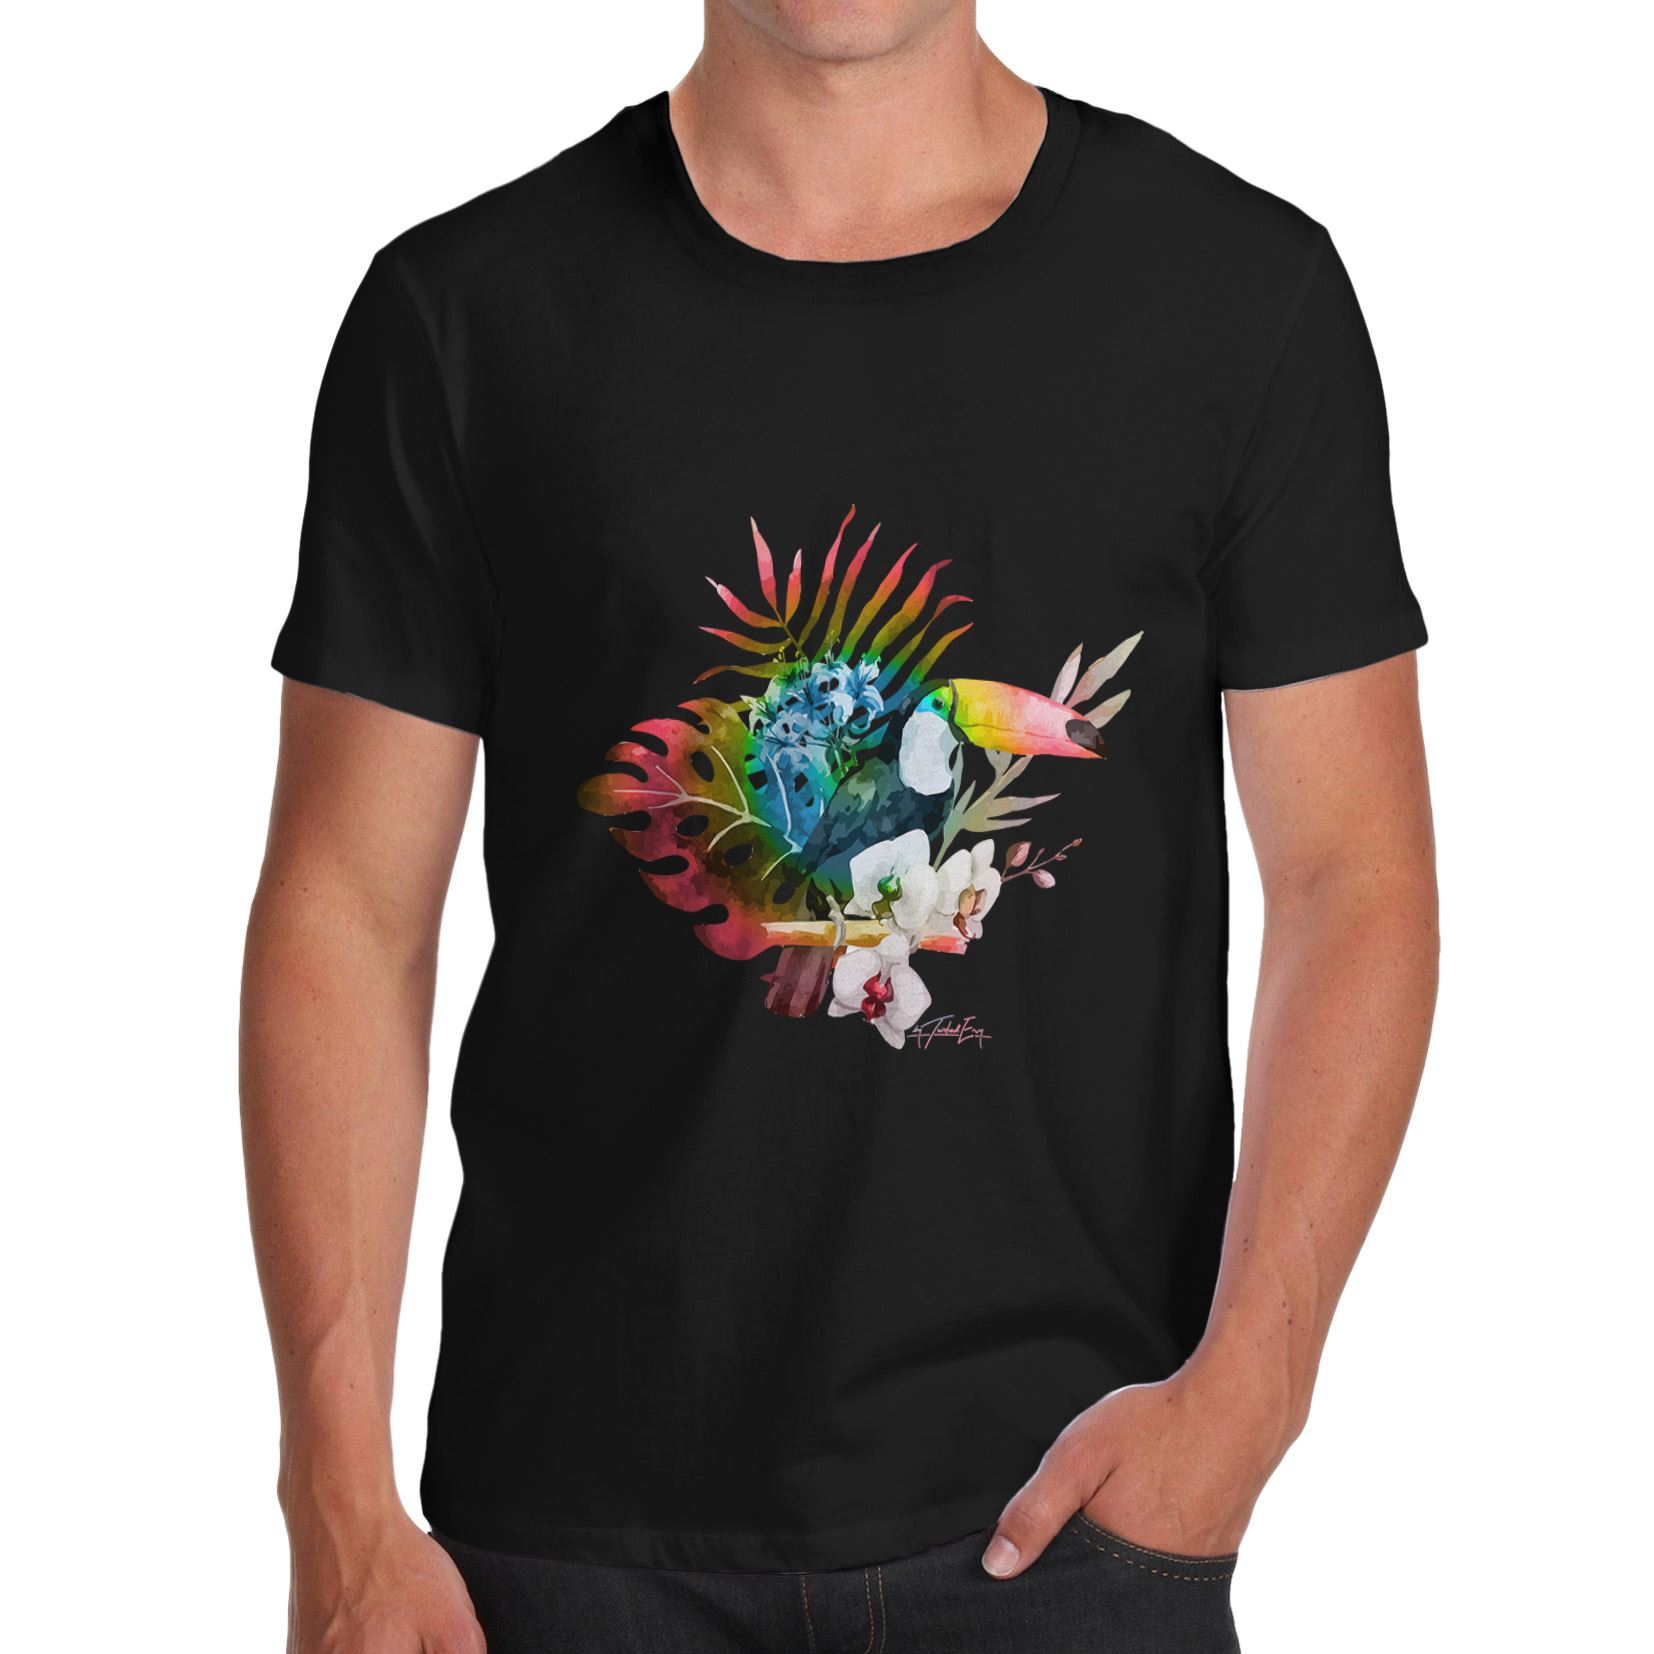 Design your own eco-friendly t-shirt - Design Your Own Shirt Crew Neck Design Toucan In The Wild Organic Cotton Short Sleeve T Shirts For Men